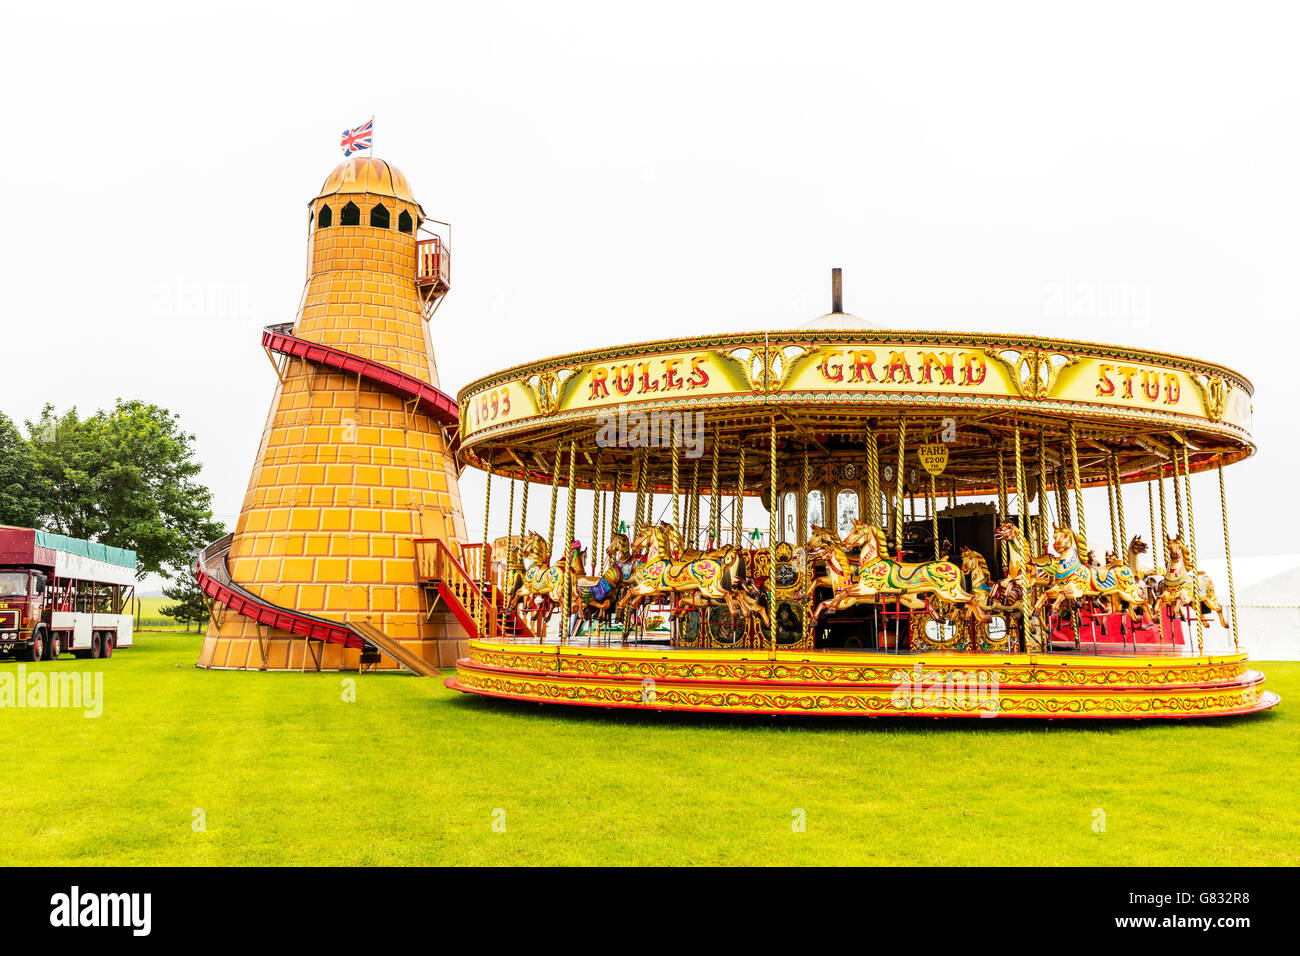 Helter skelter merry go round fair fairground rides ride attraction attractions fairs UK England GB Stock Photo